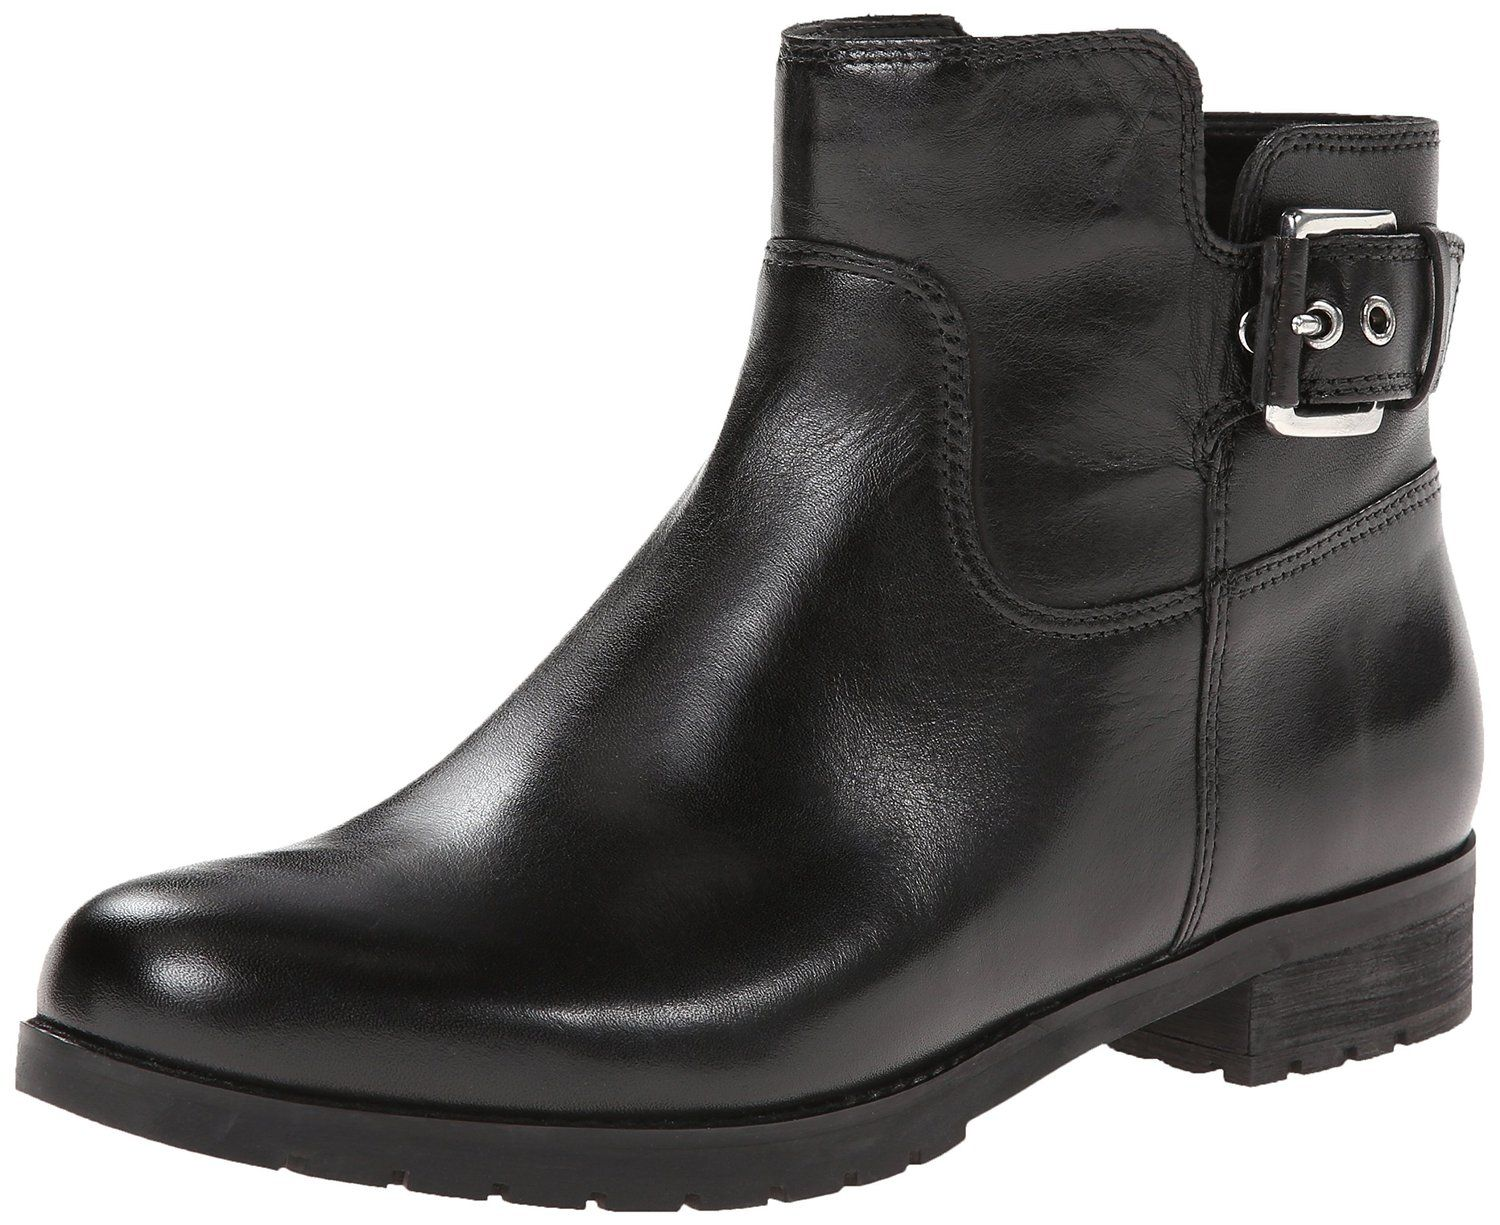 87 Amazon.com: Rockport Women's Tristina Buckle Ankle Boot: Shoes